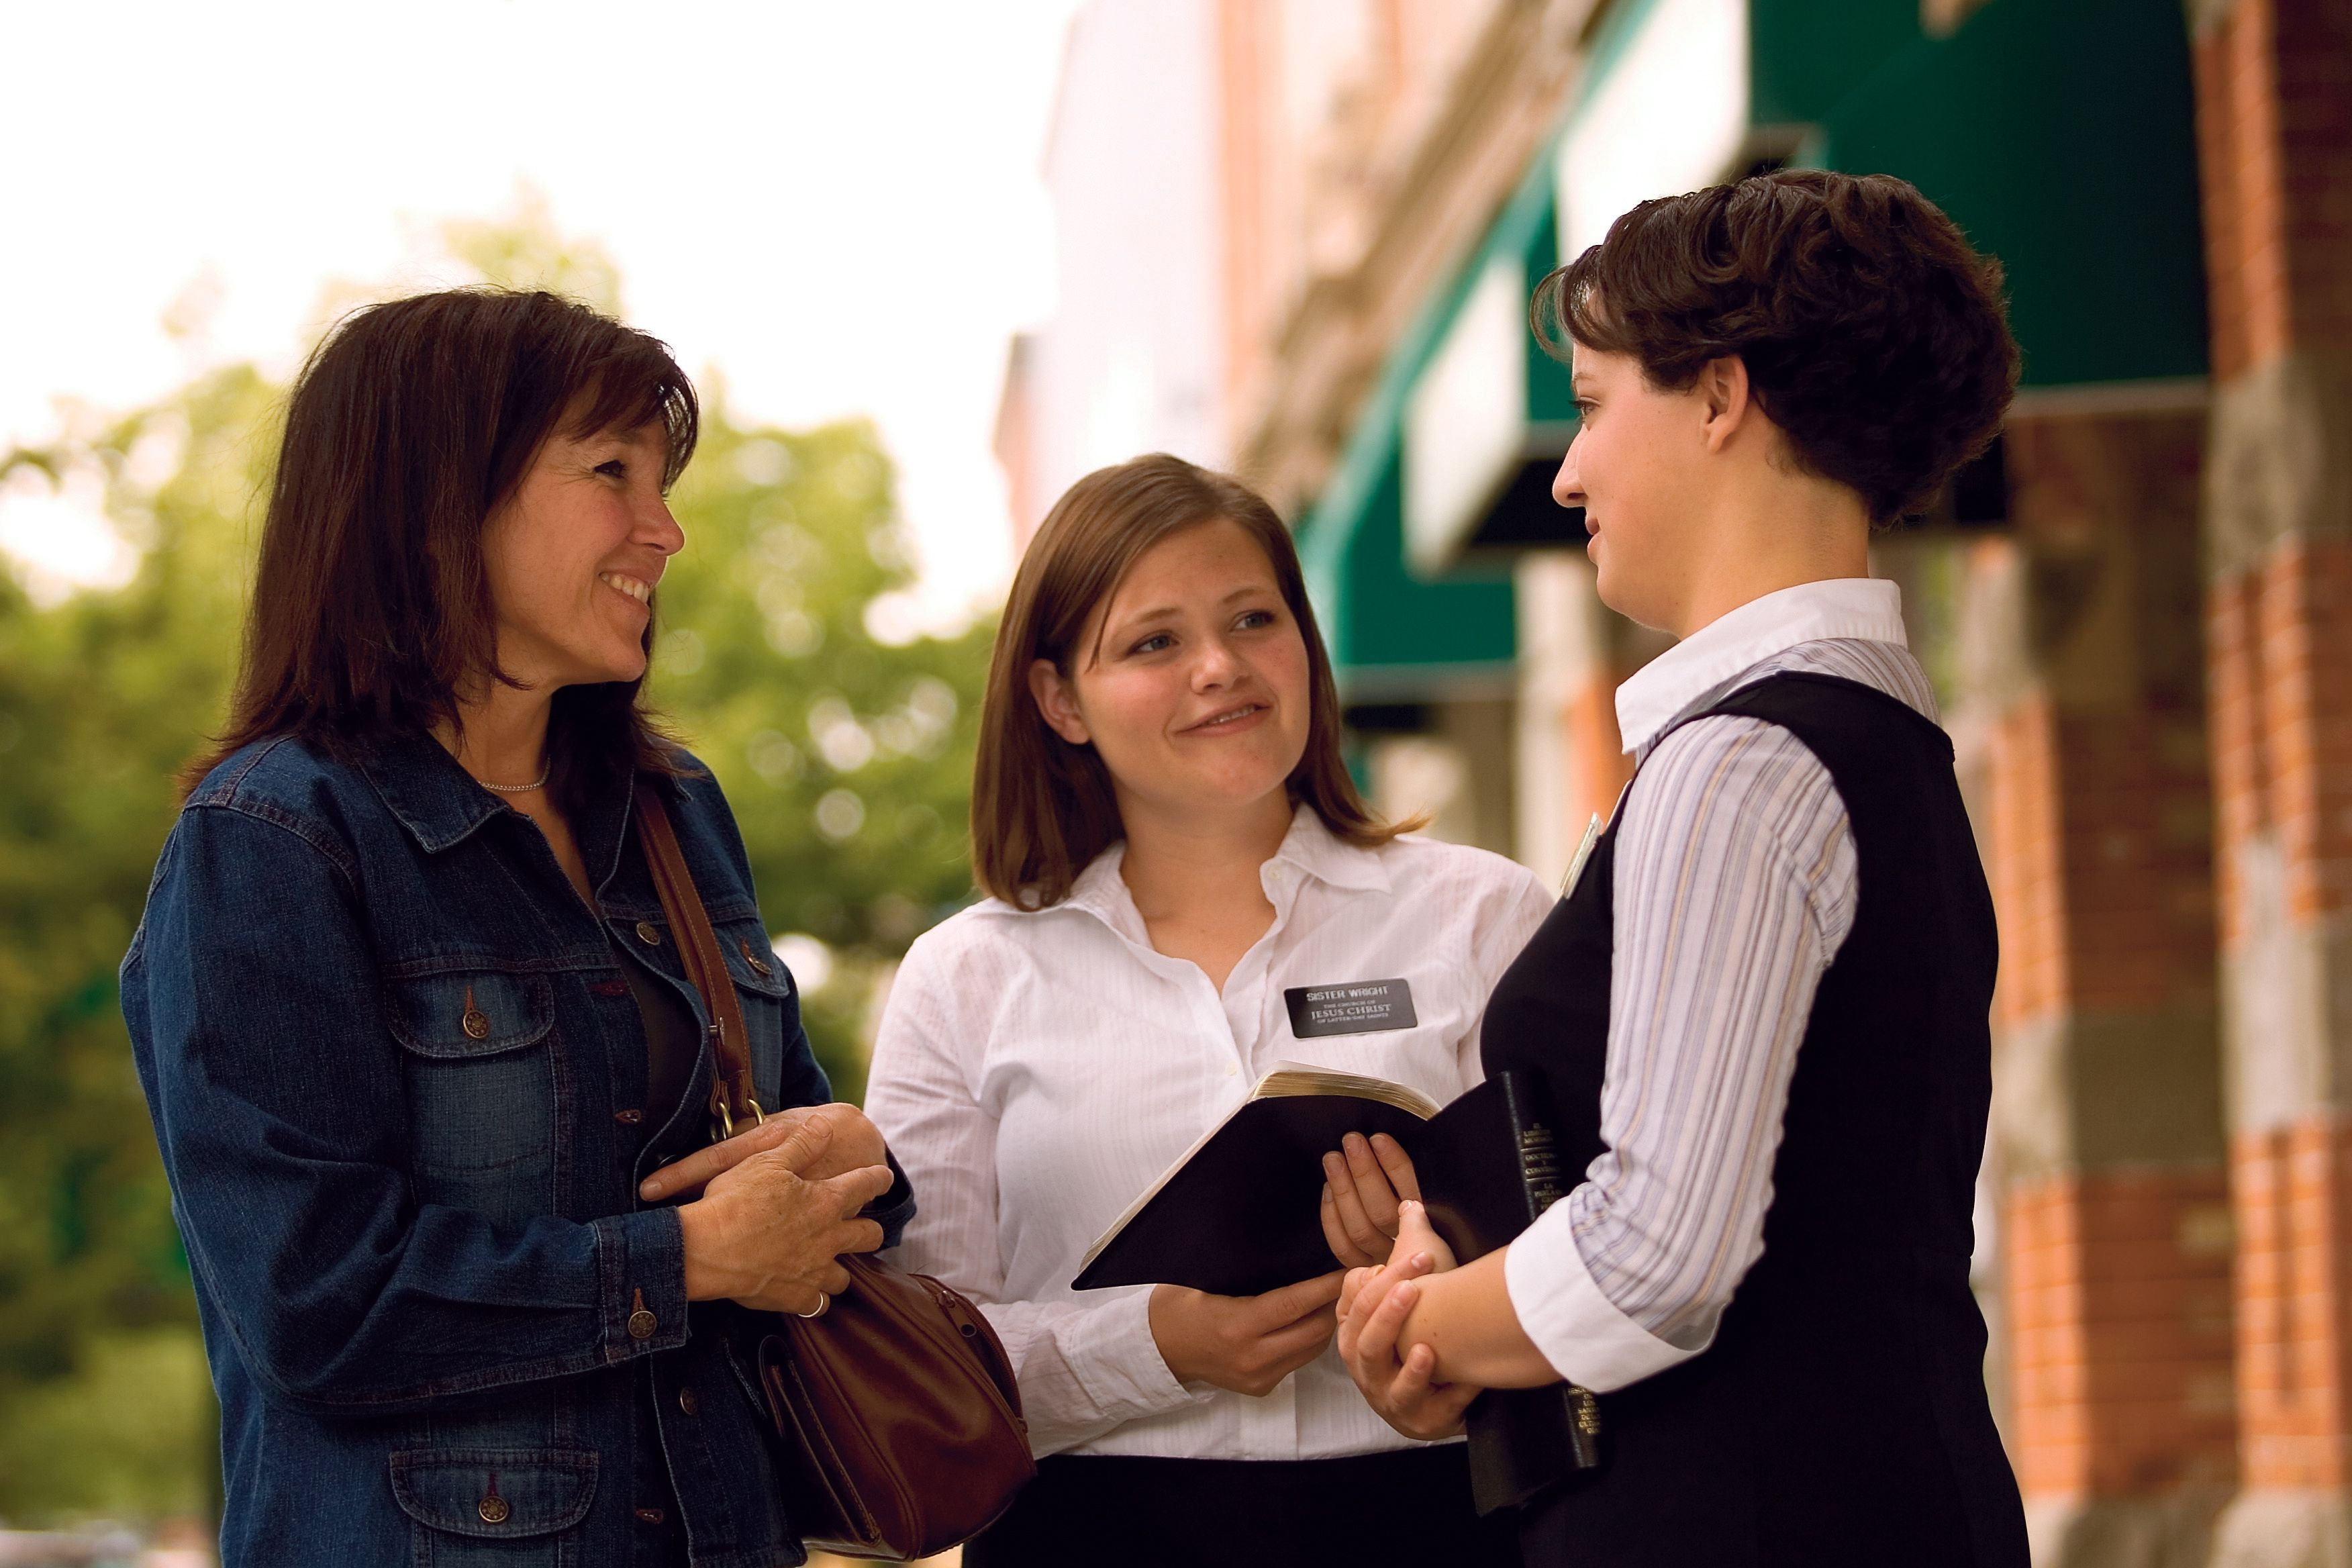 Two sister missionaries holding their scriptures and speaking with a woman wearing a denim jacket in an outdoor setting.